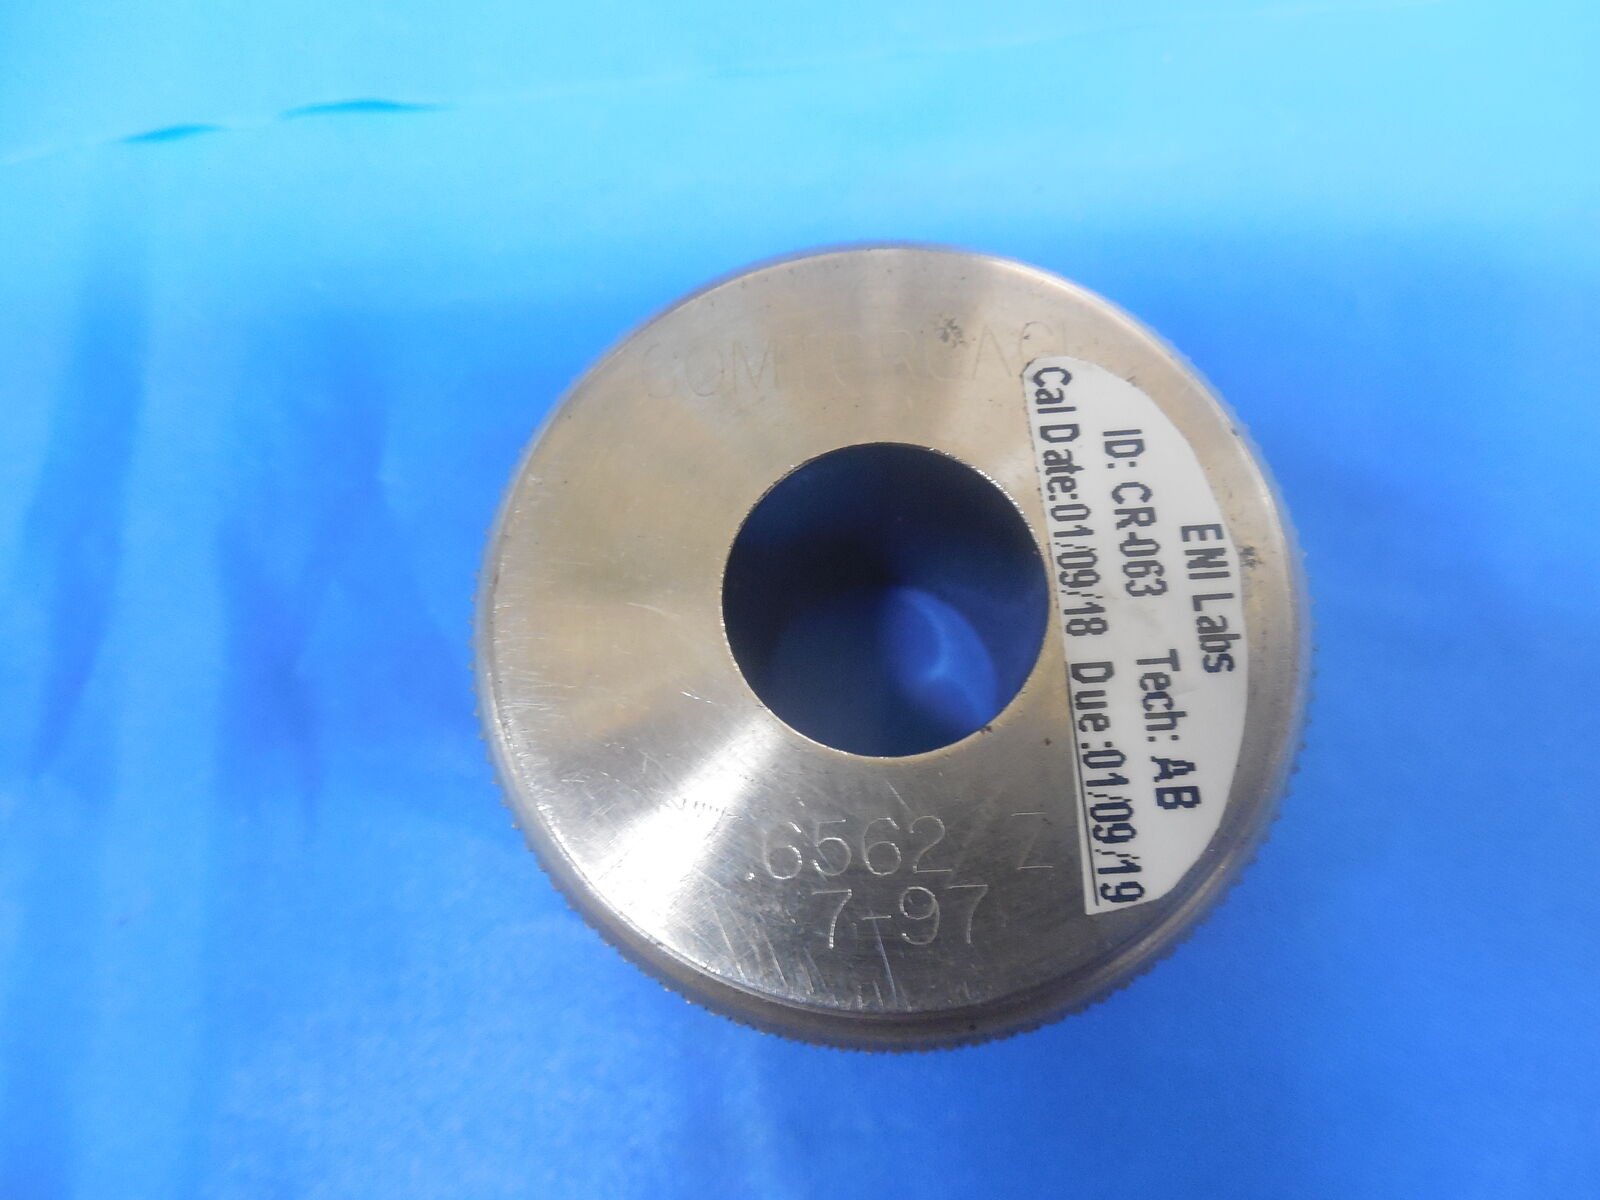 .6330 SMOOTH PLAIN BORE RING GAGE .625 .008 OVERSIZE 5//8 CLASS Z INSPECTION